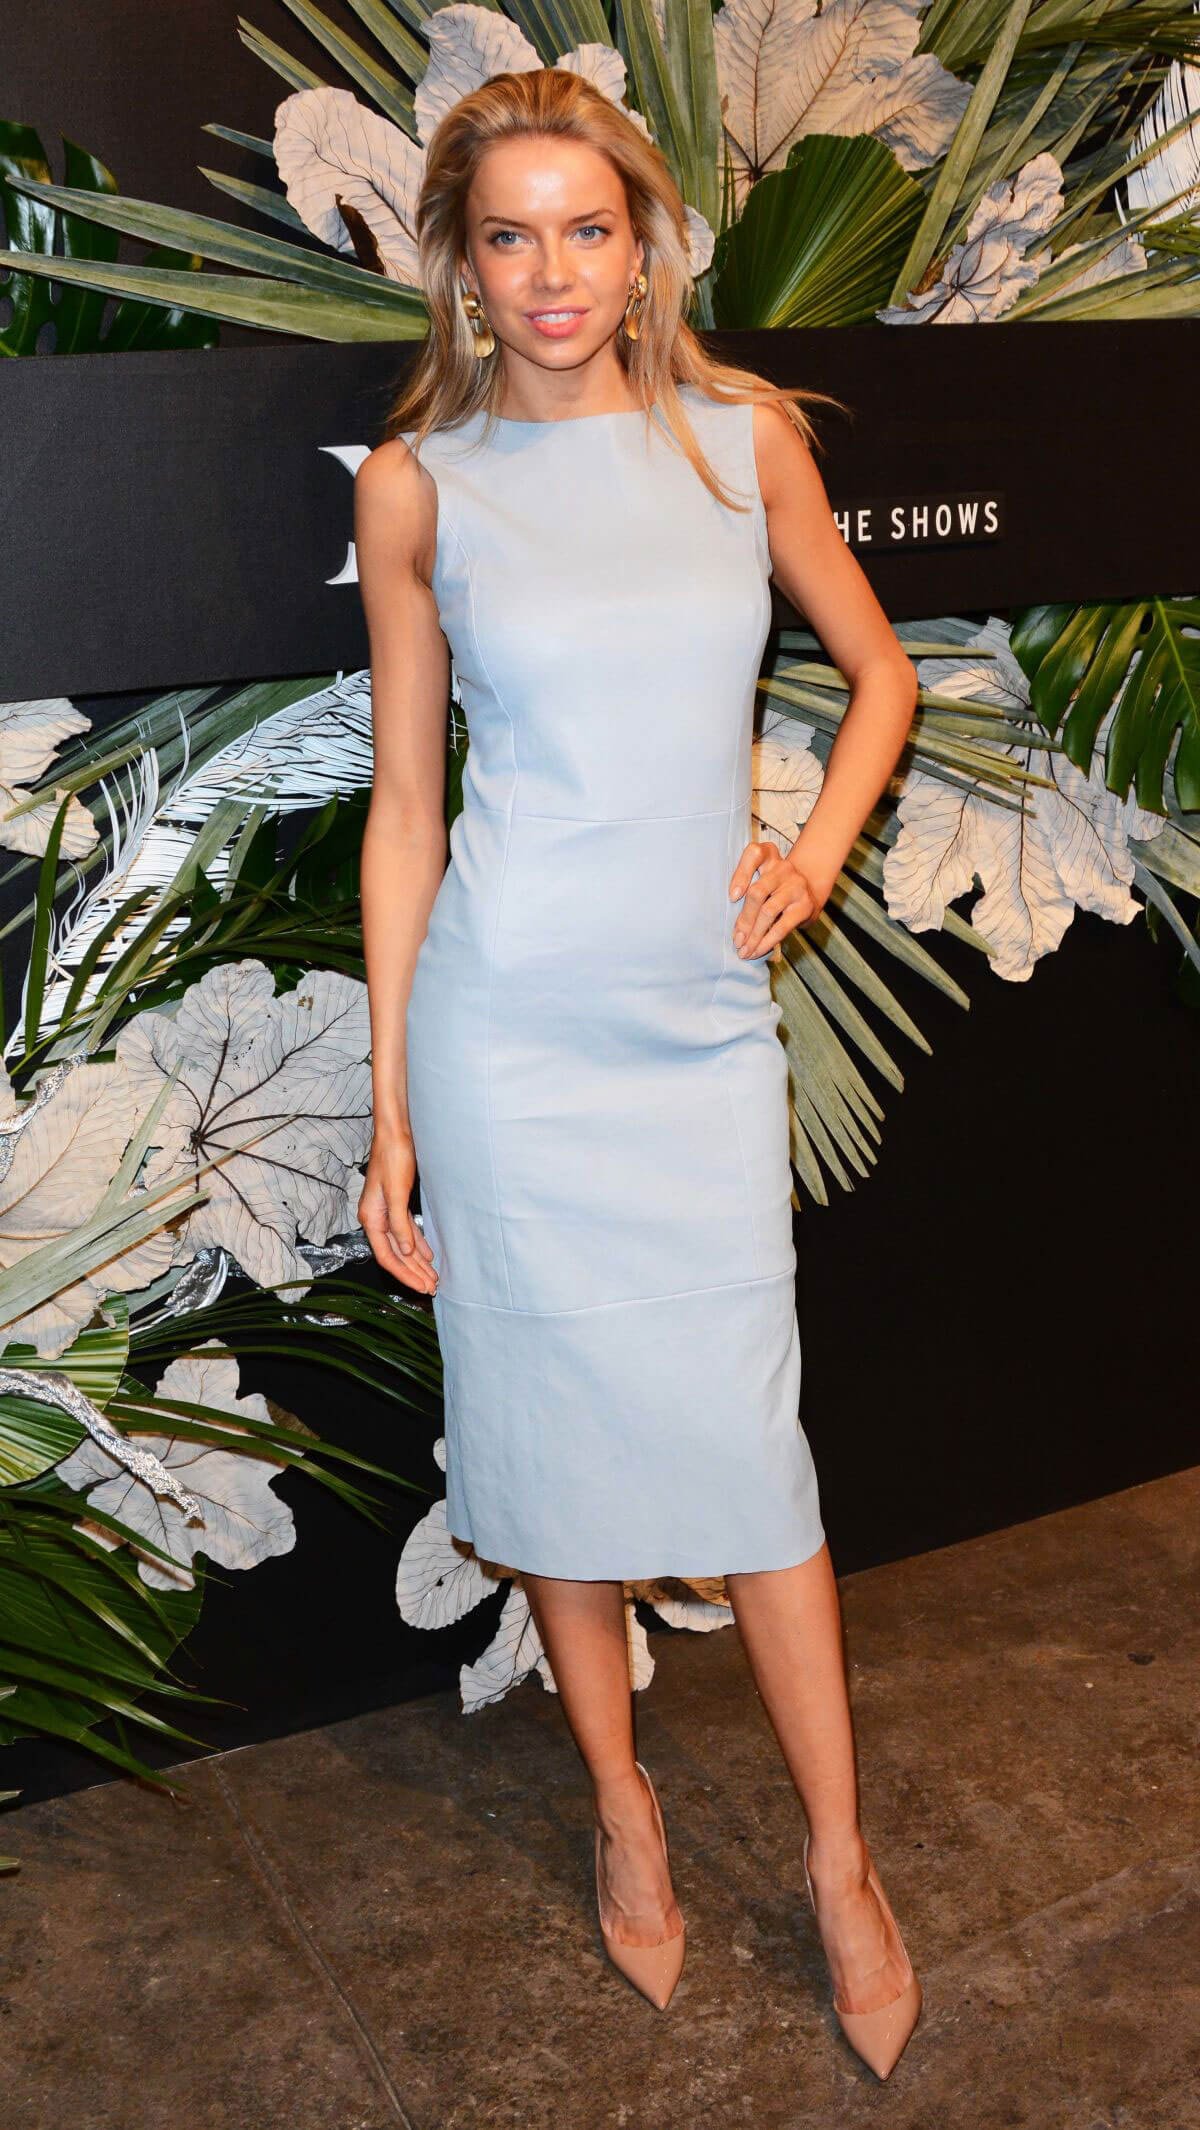 Louisa Warwick at ELLE, E! and Img New York Fashion Week Kick-off Party in New York